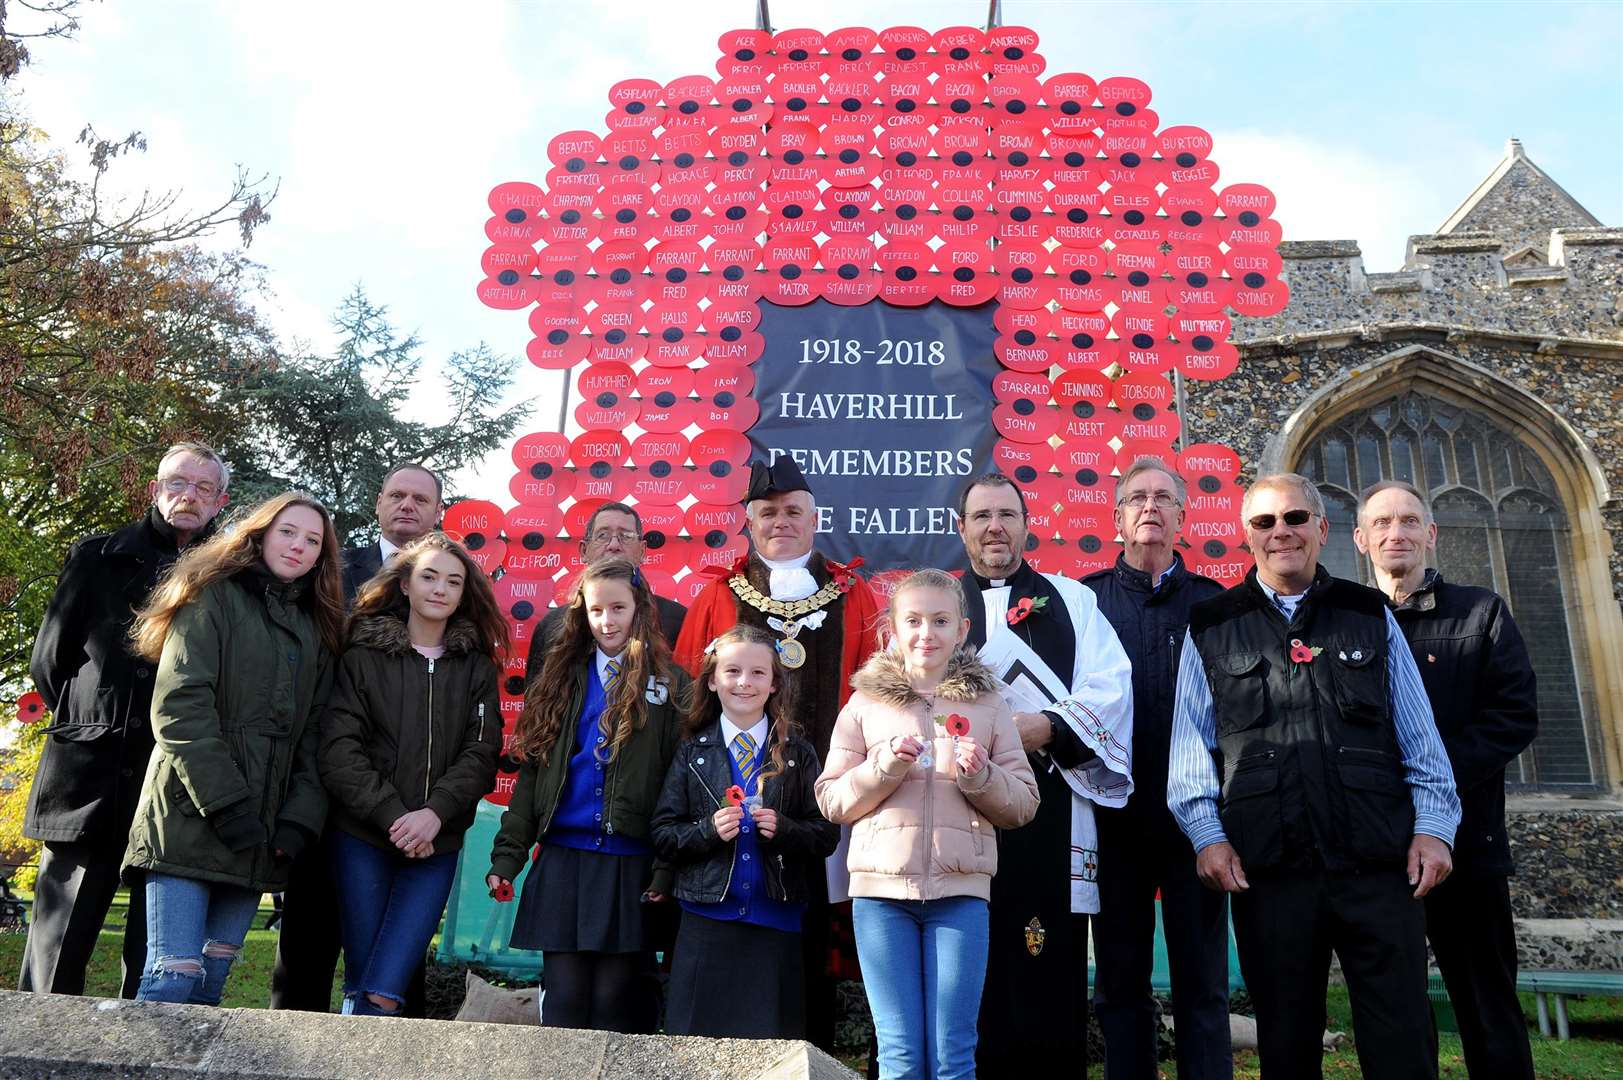 The Haverhill RBL and Local History Groups have worked with local schools to make 144 poppies, one for each of the town's WWI soldiers that died. Each poppy gives the man's name and age when they died and they are put together to form the shape of a giant poppy. ....PICTURE: Mecha Morton... .. (5056924)